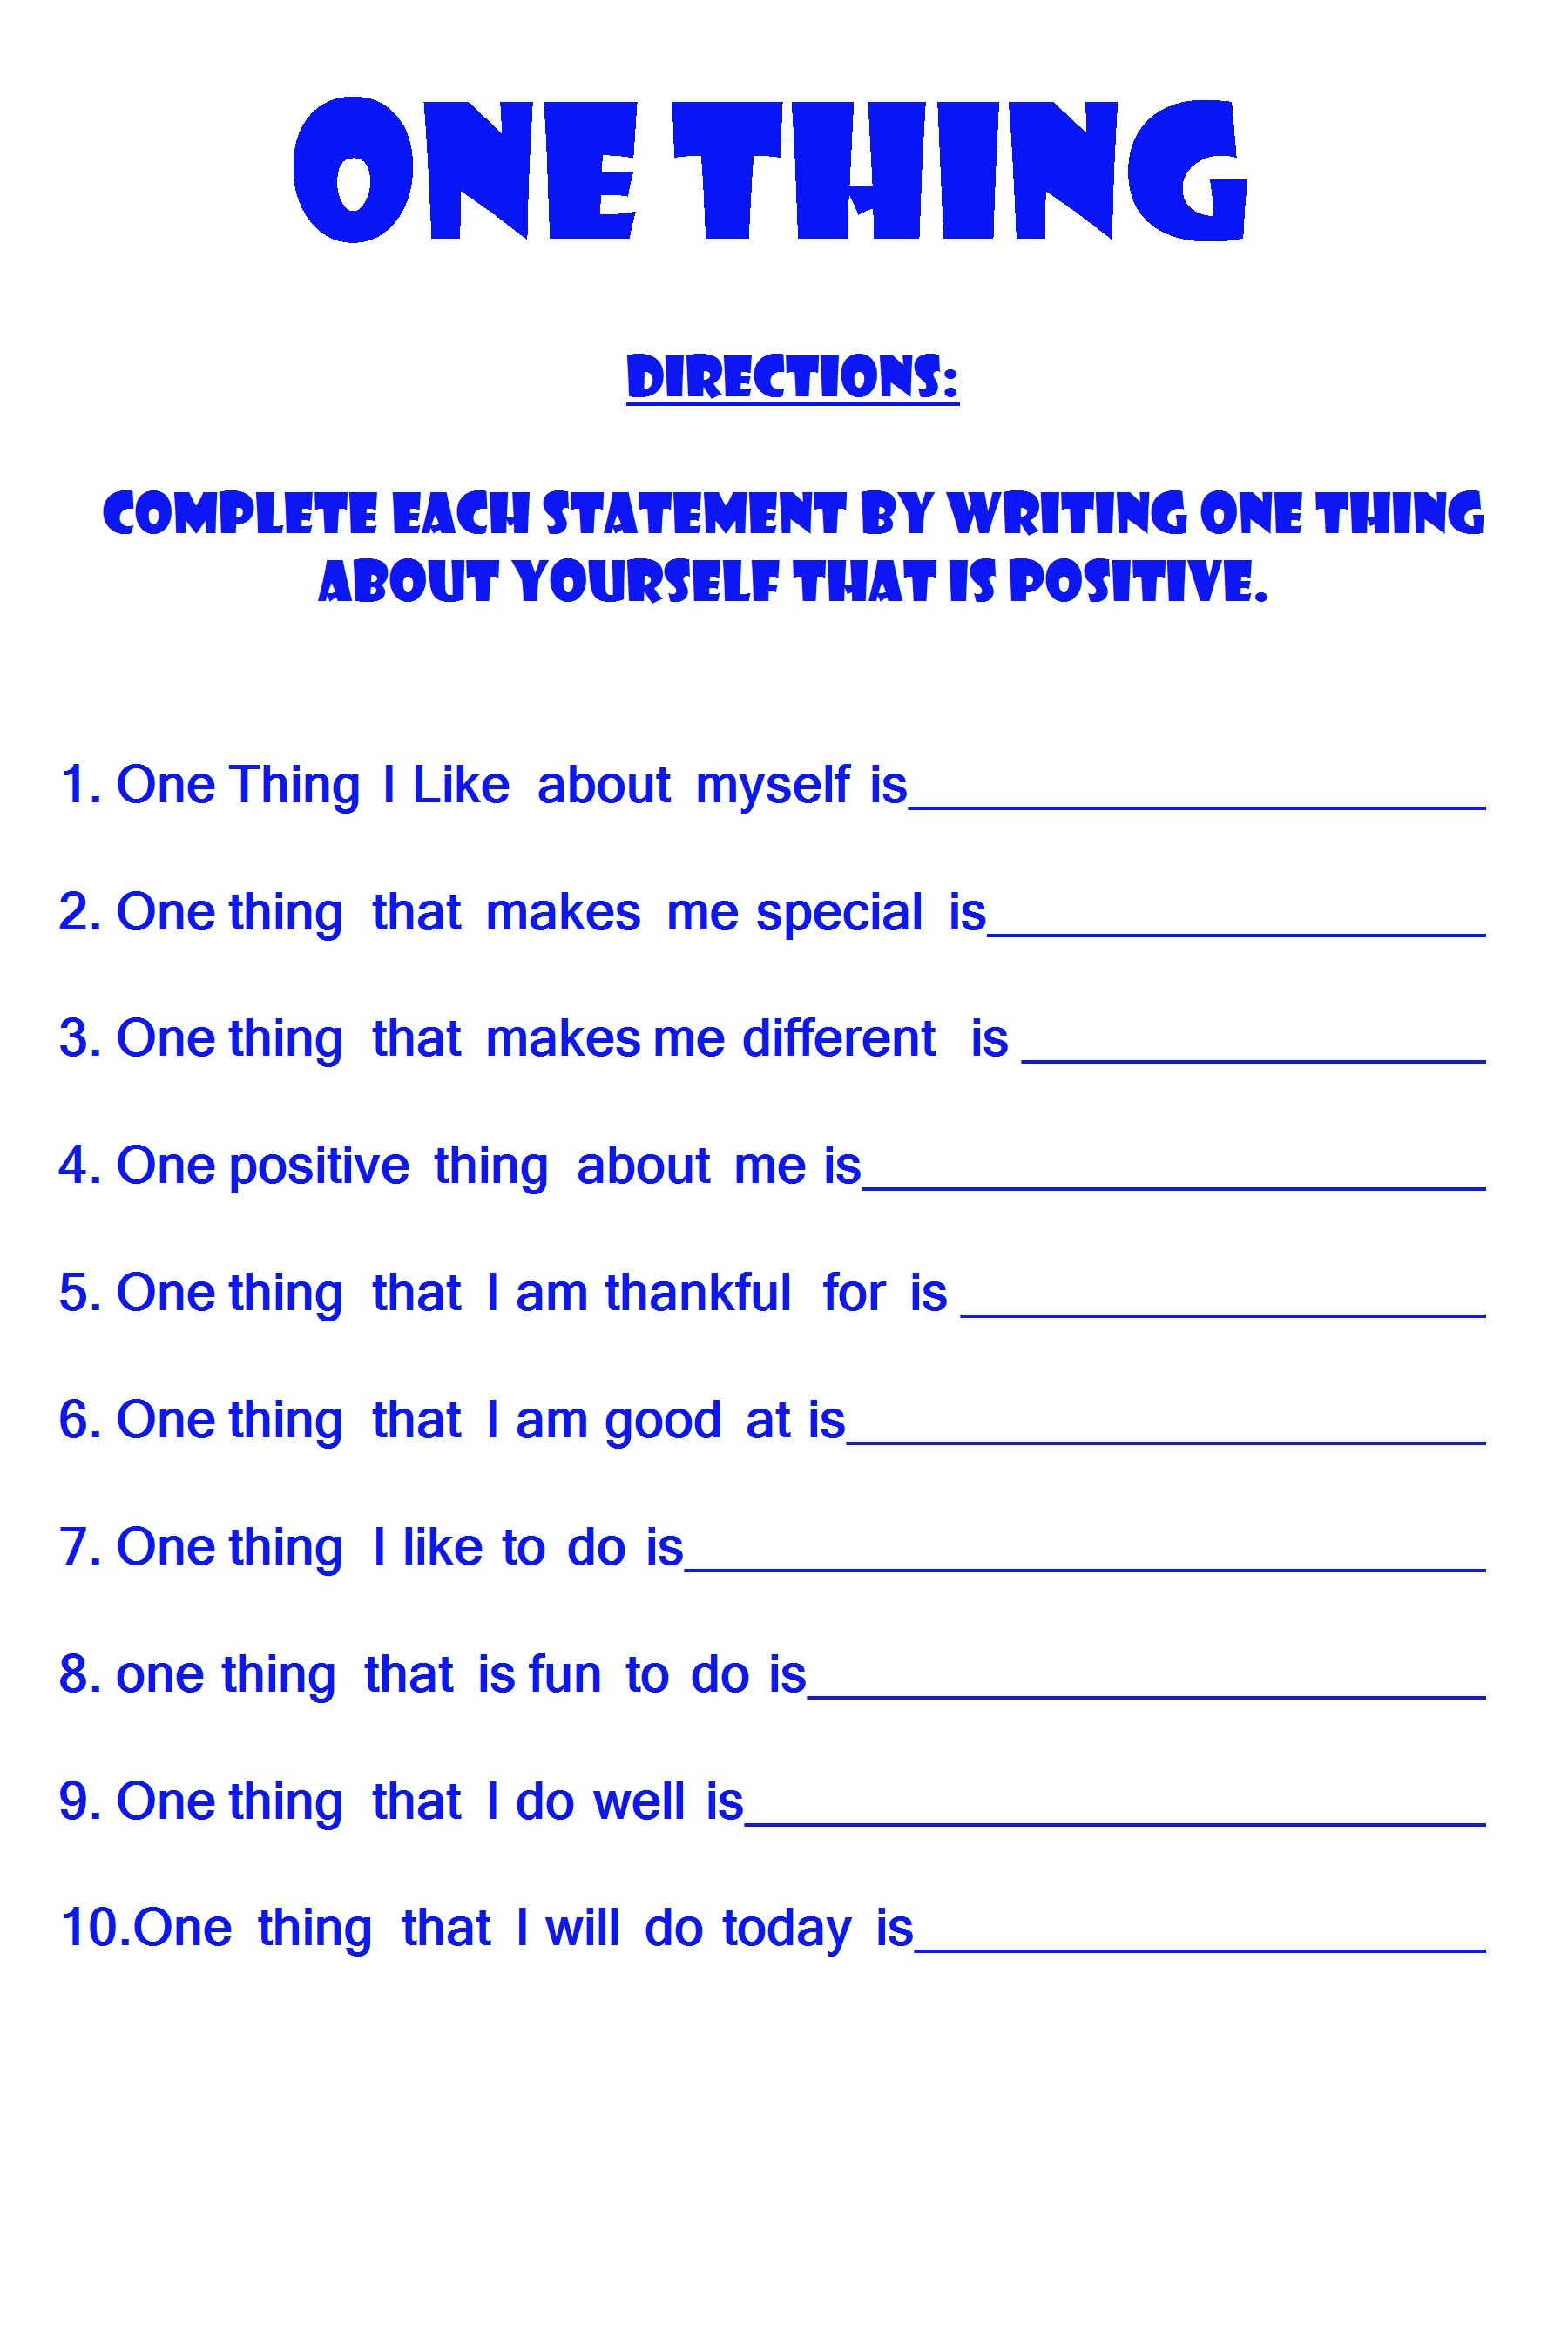 medium resolution of One Thing: Positive Self Esteem Worksheet   Self esteem worksheets